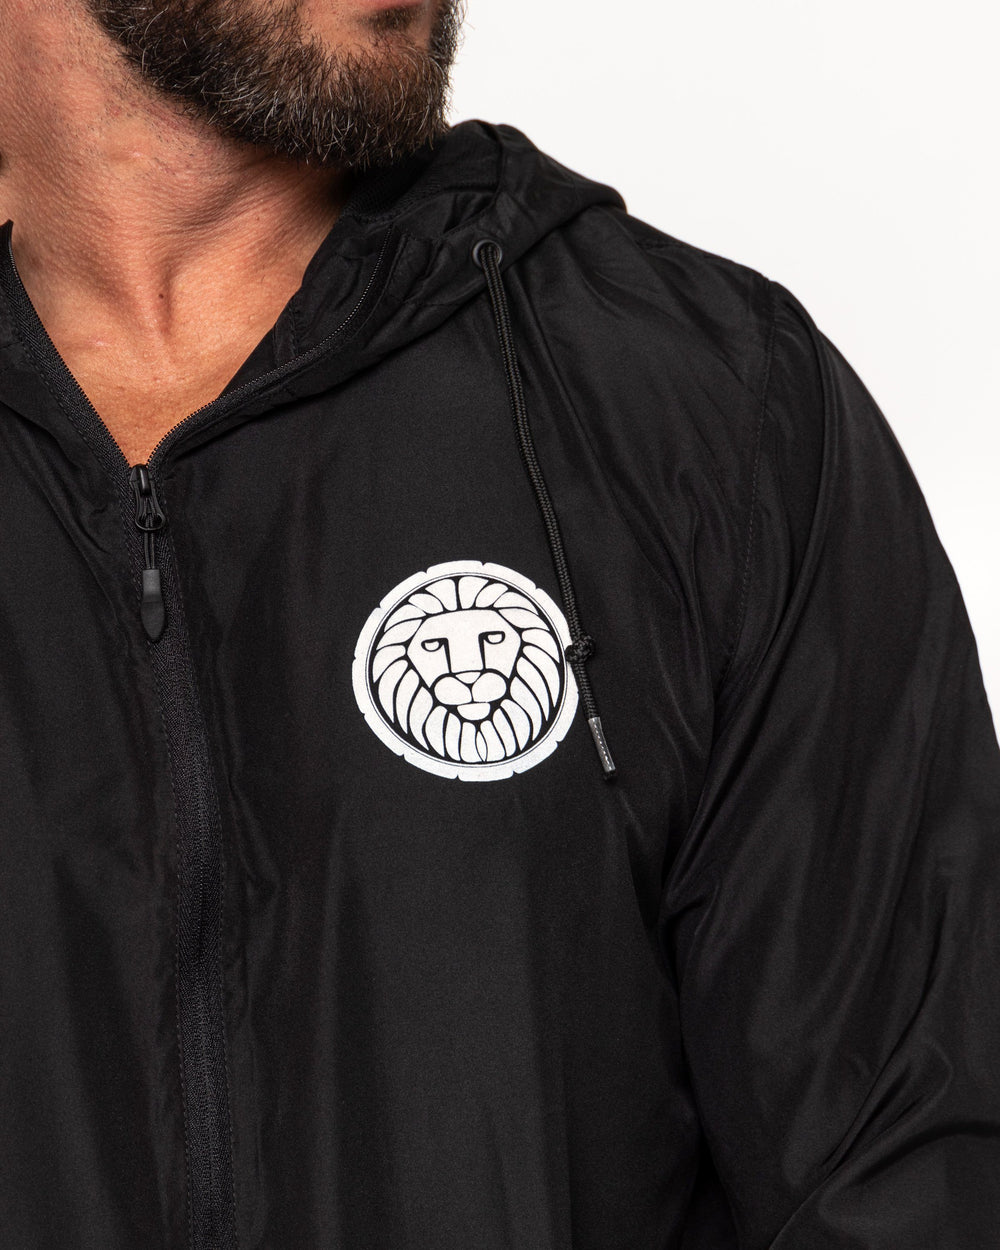 Trainer Windbreaker - Black MEN'S WINDBREAKERS STAIX